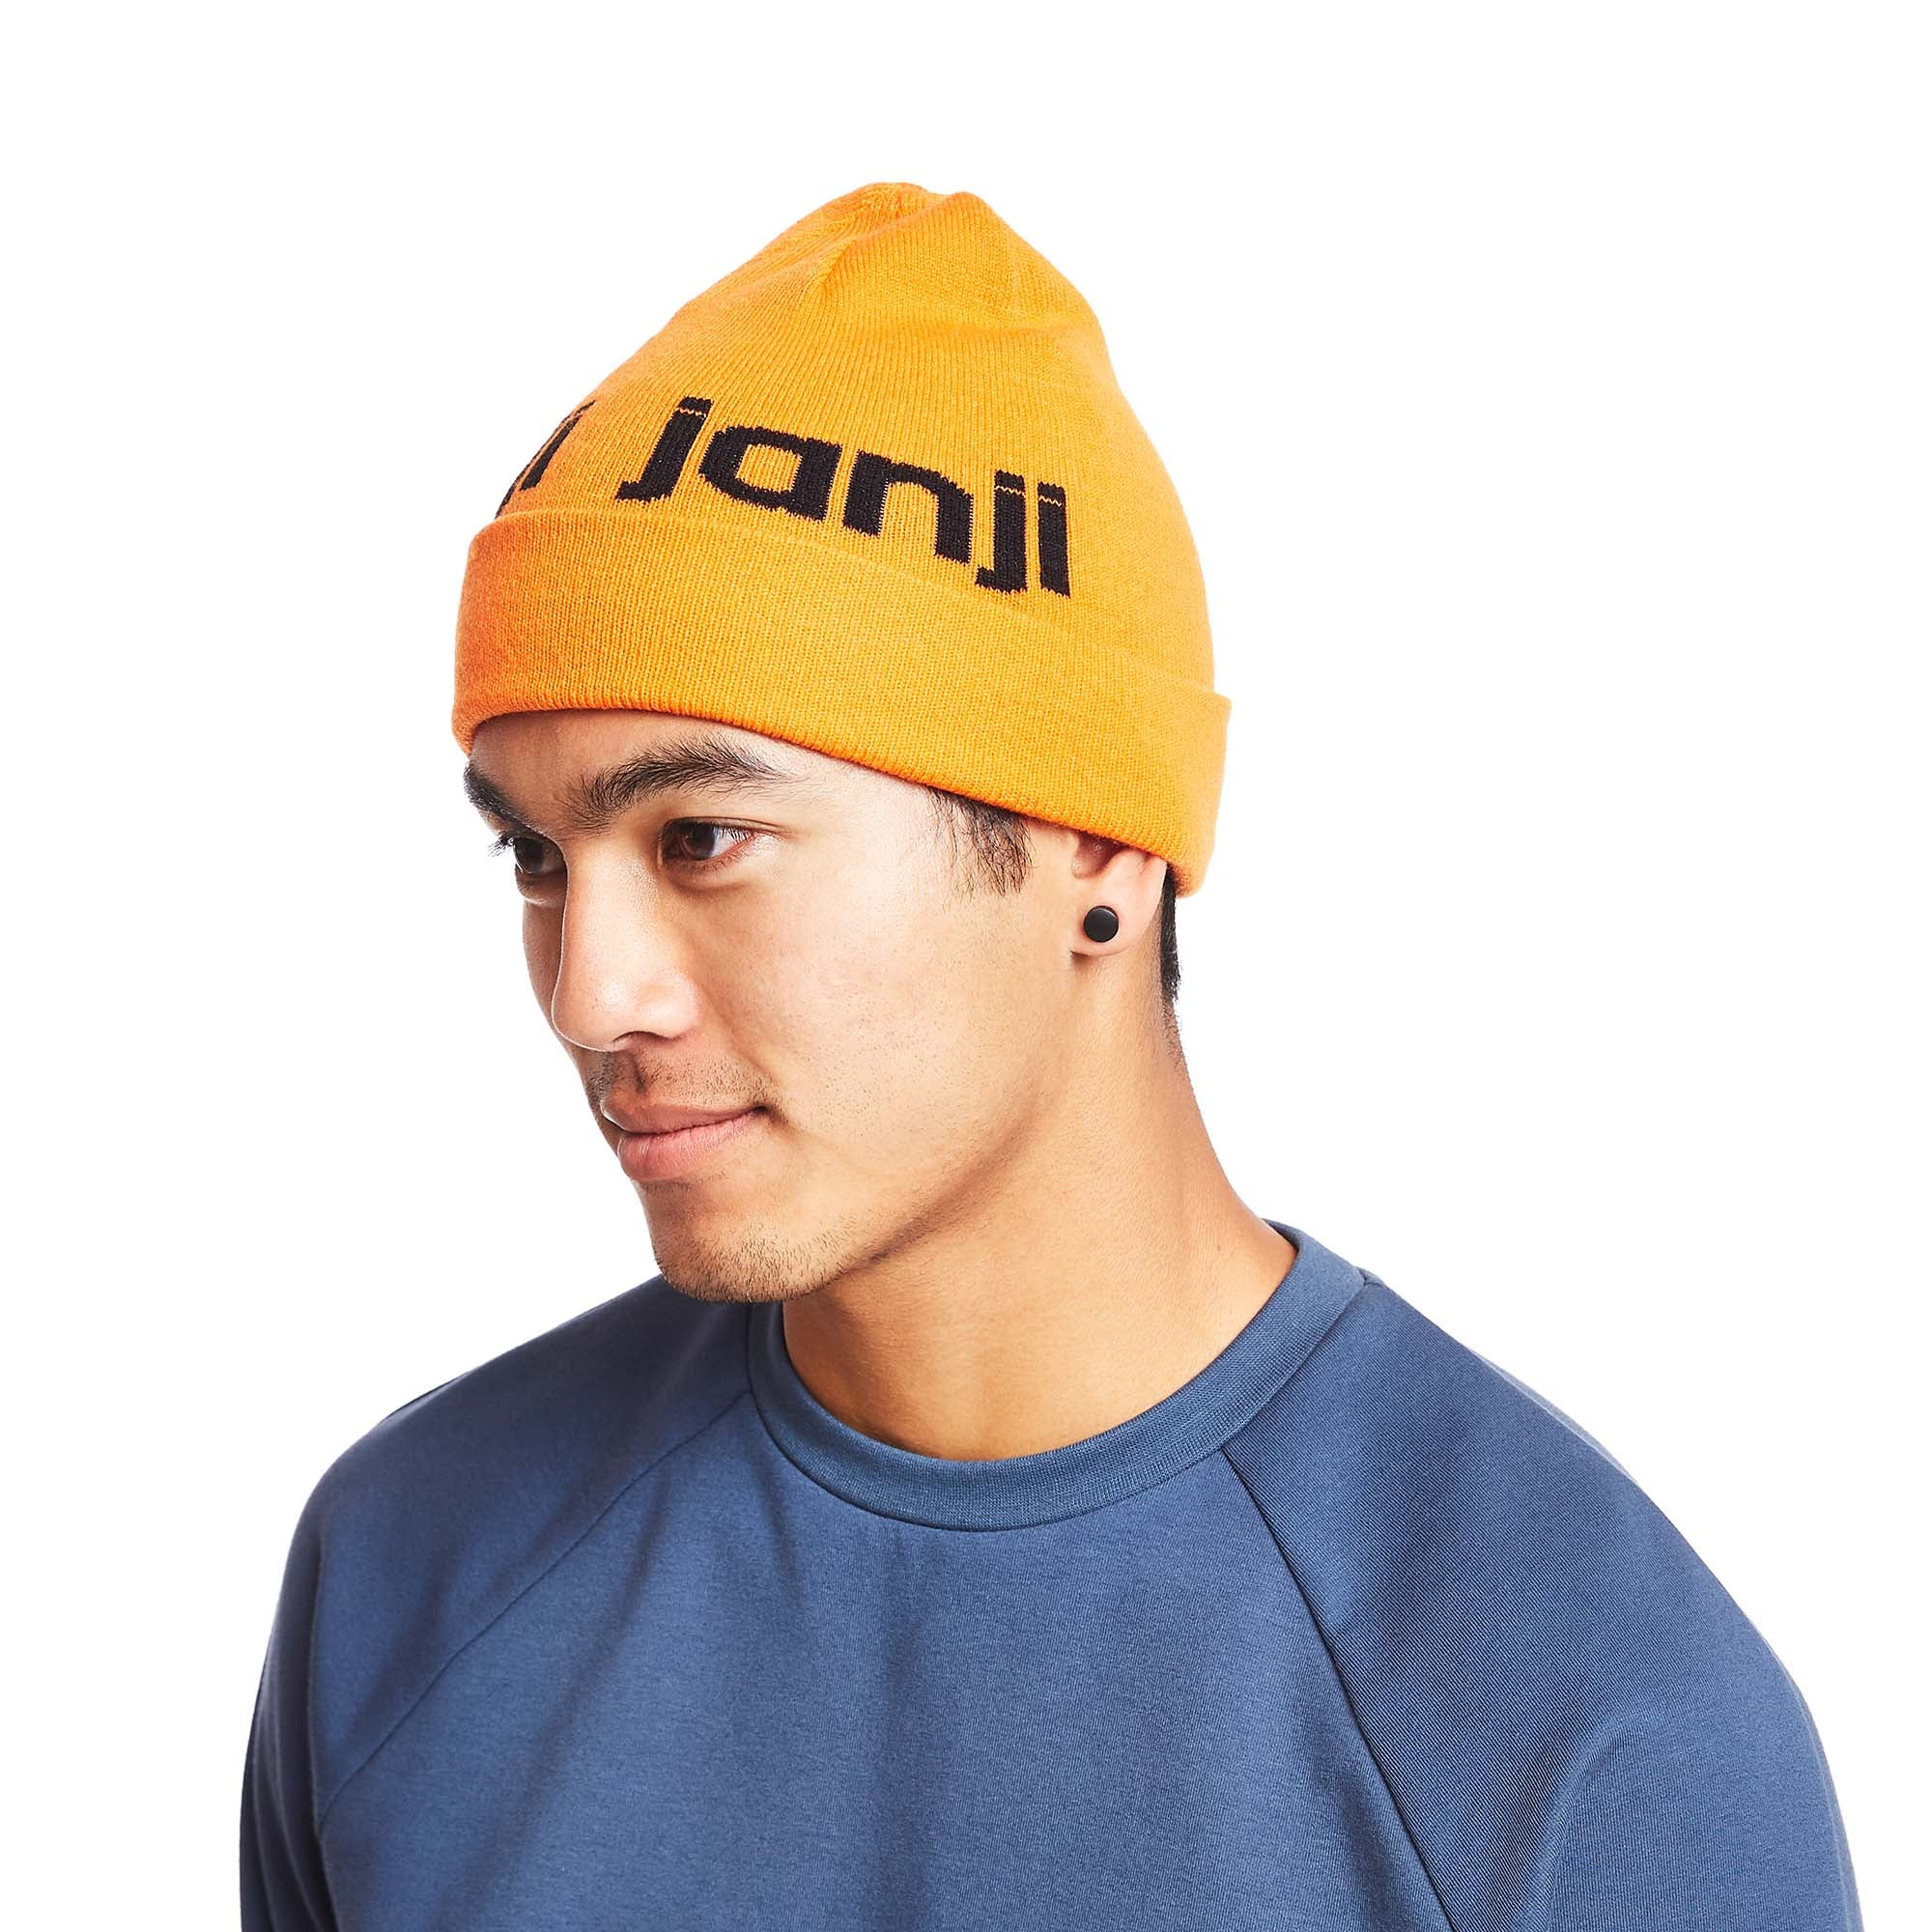 Outlook Beanie in Super Orange